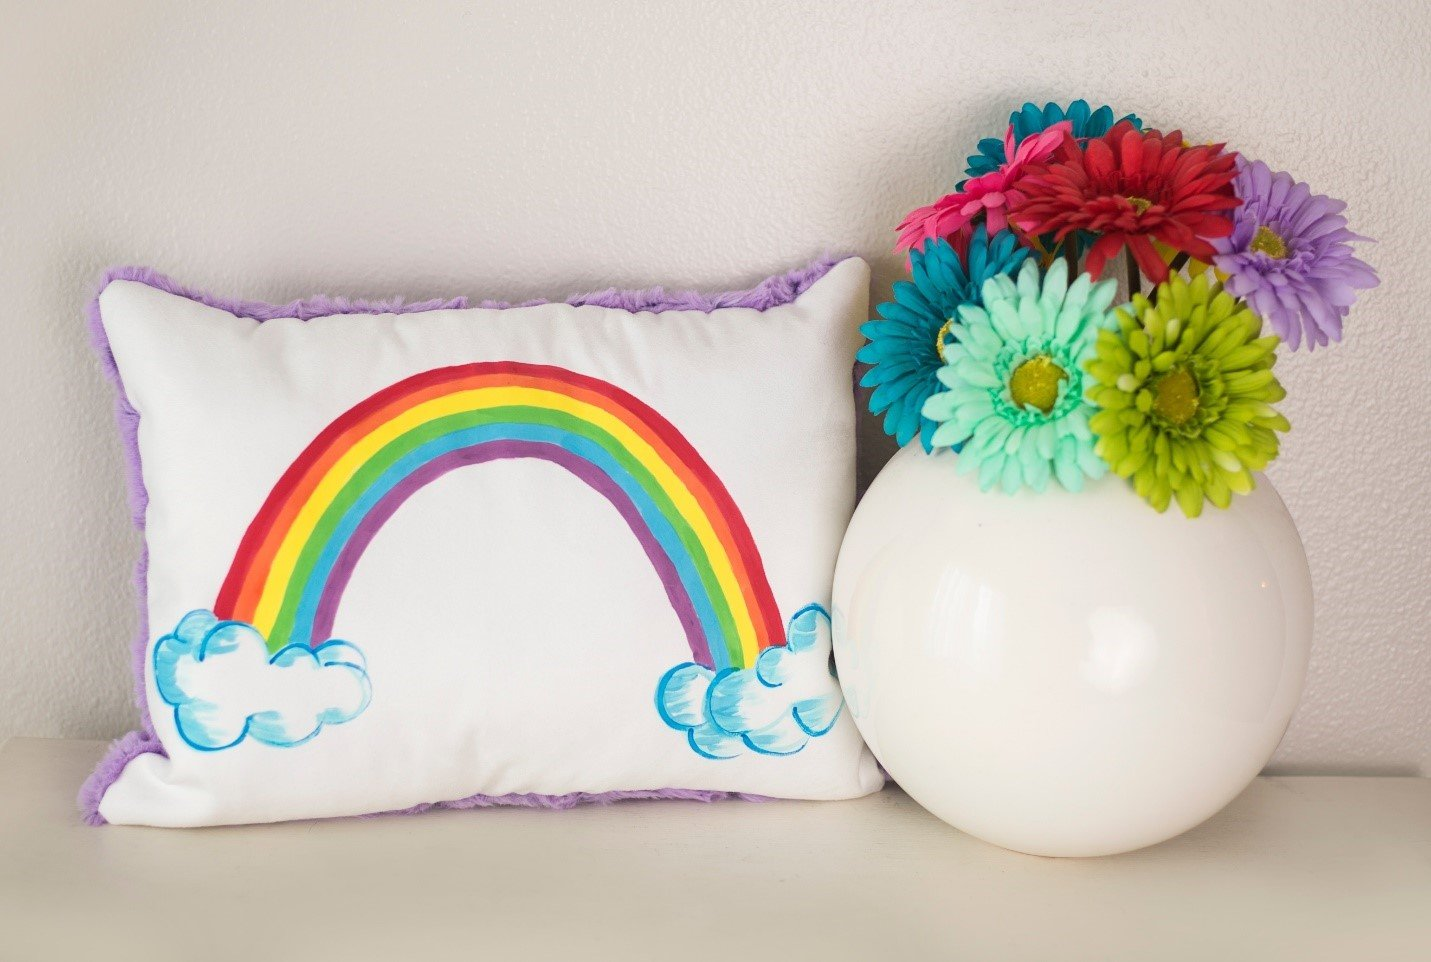 Rainbow Painted Pillow - from Pretty Painted Pillows DIY for Spring in Cuddle® Suede and Luxe Cuddle®